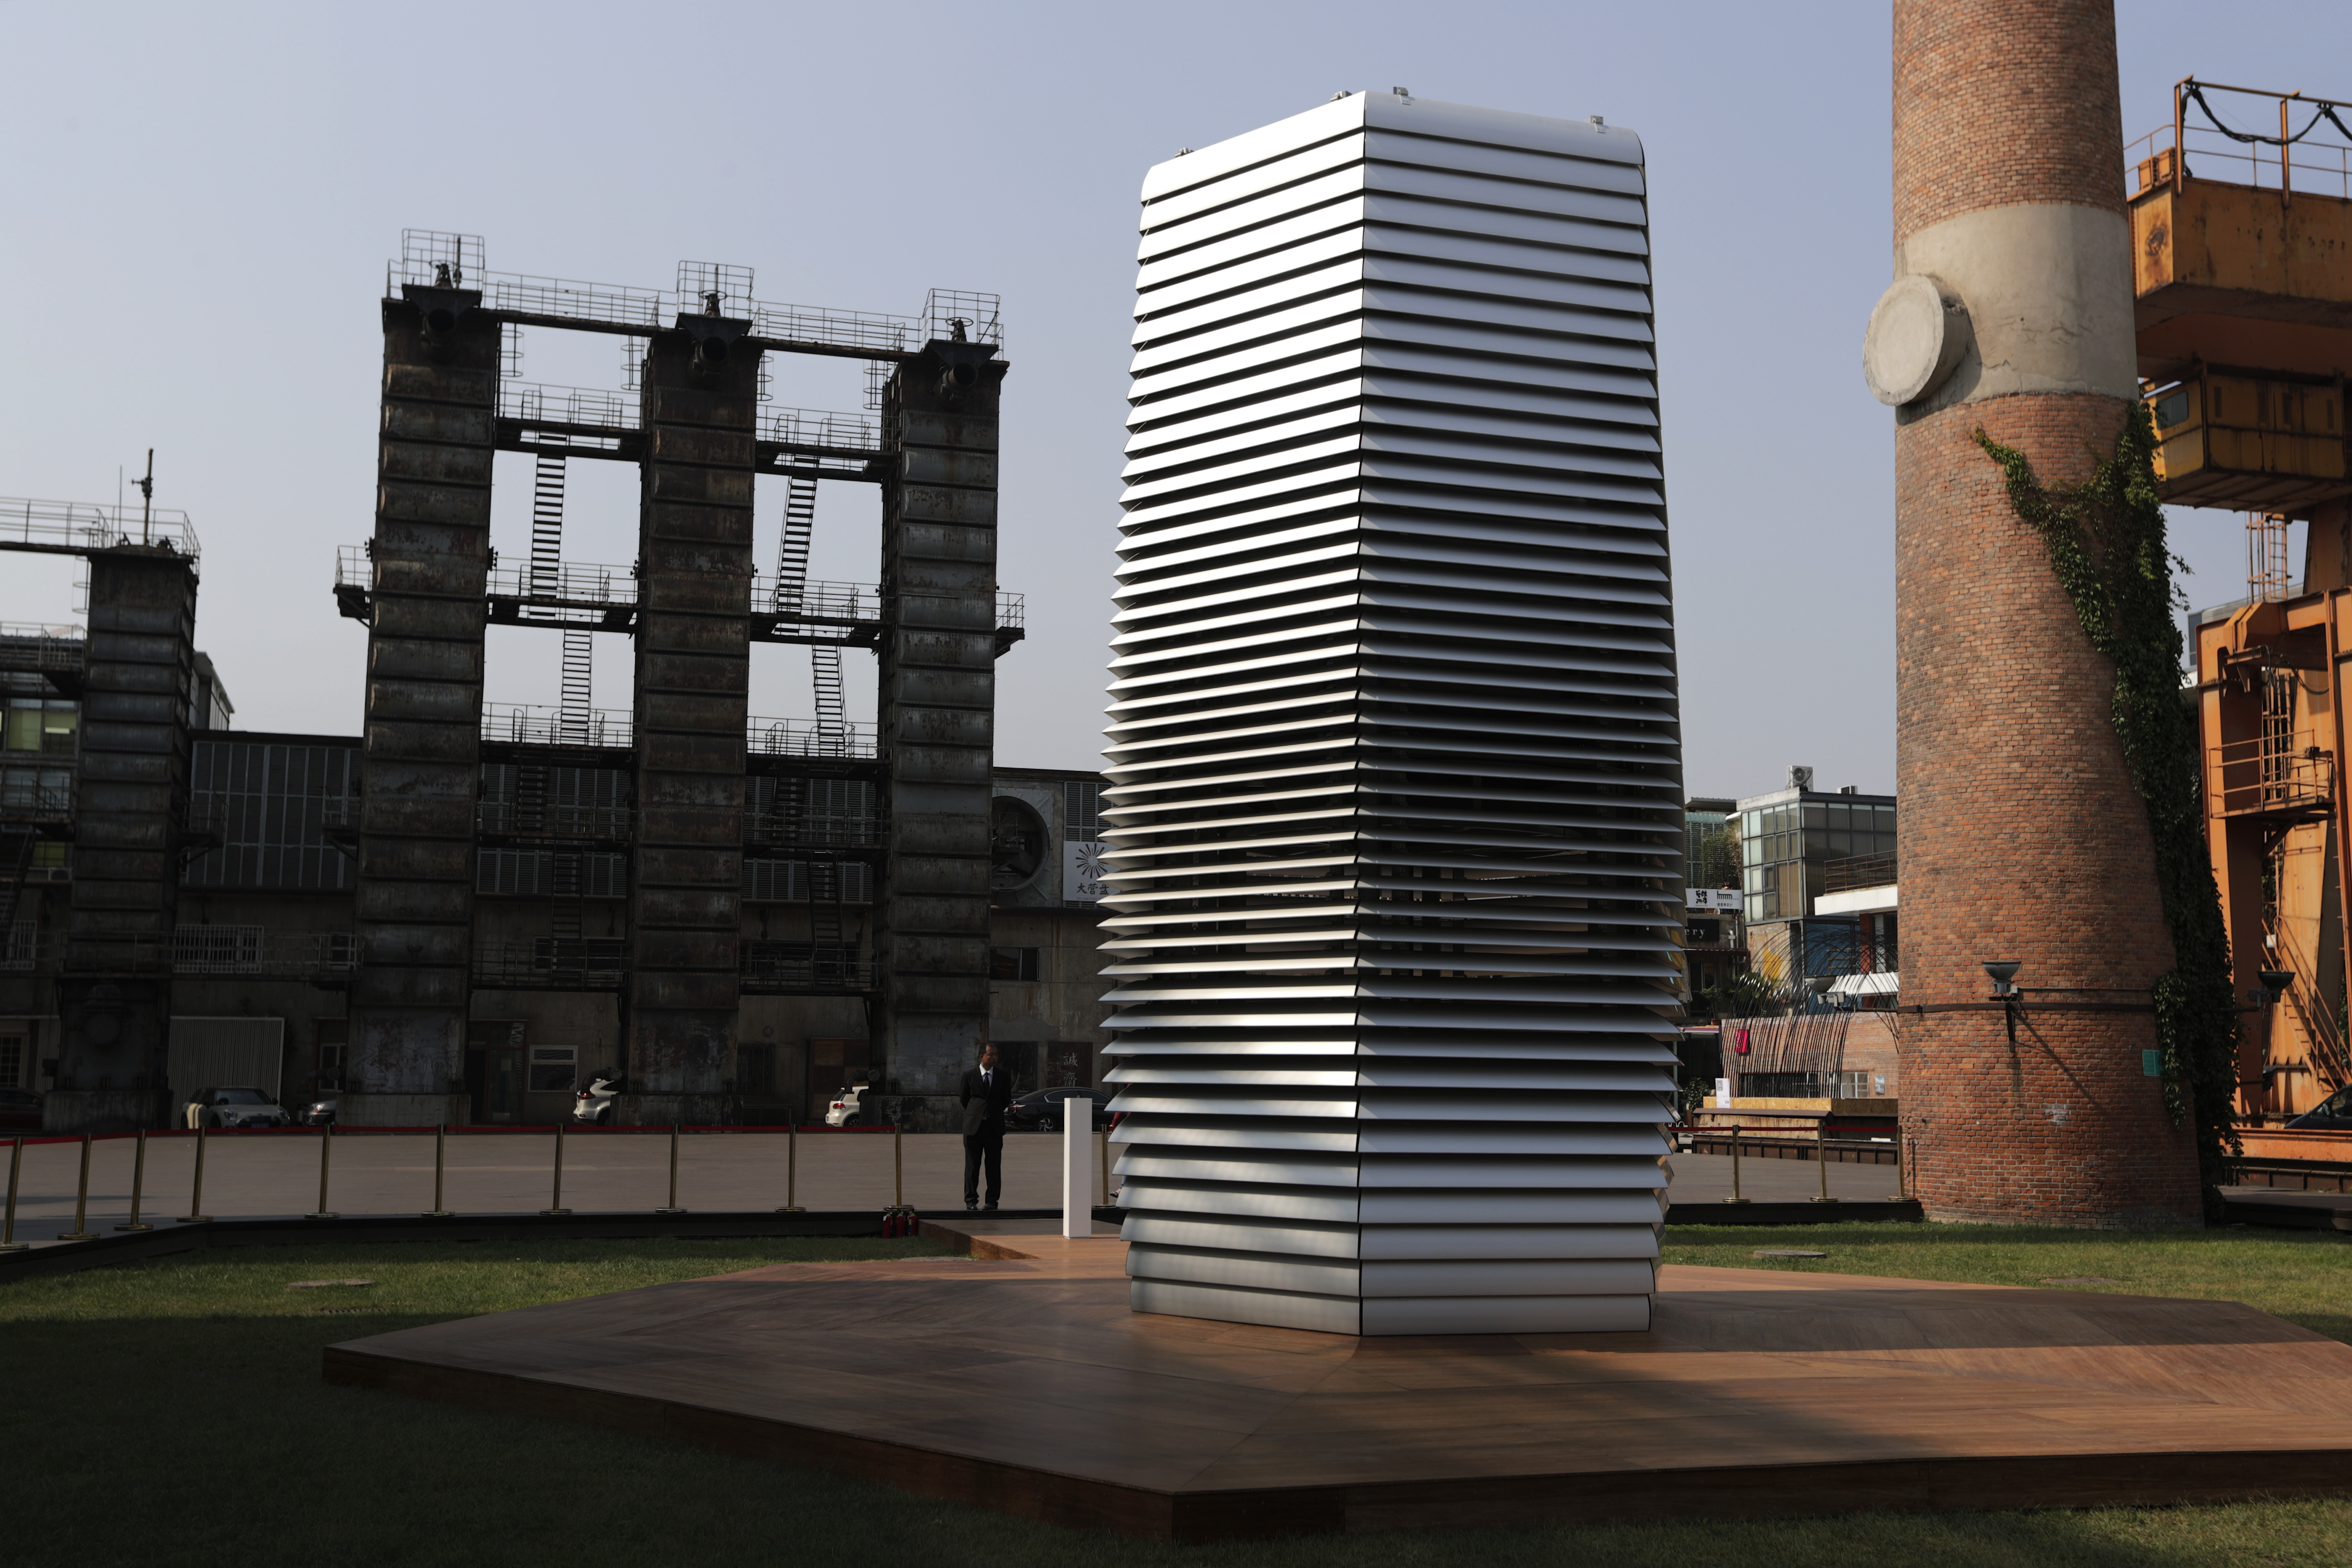 Security personnel stand near the Smog Free Tower designed by Dutch artist Daan Roosegaarde on display in between chimneys at D-751art district in Beijing, Thursday, Sept. 29, 2016. In a city where smog routinely blankets the streets and chokes off clean air, a Dutch artist has offered an eccentric solution: a 20-foot metal tower that takes in smog and purifies it like a giant outdoor vacuum cleaner. (AP Photo/Andy Wong)